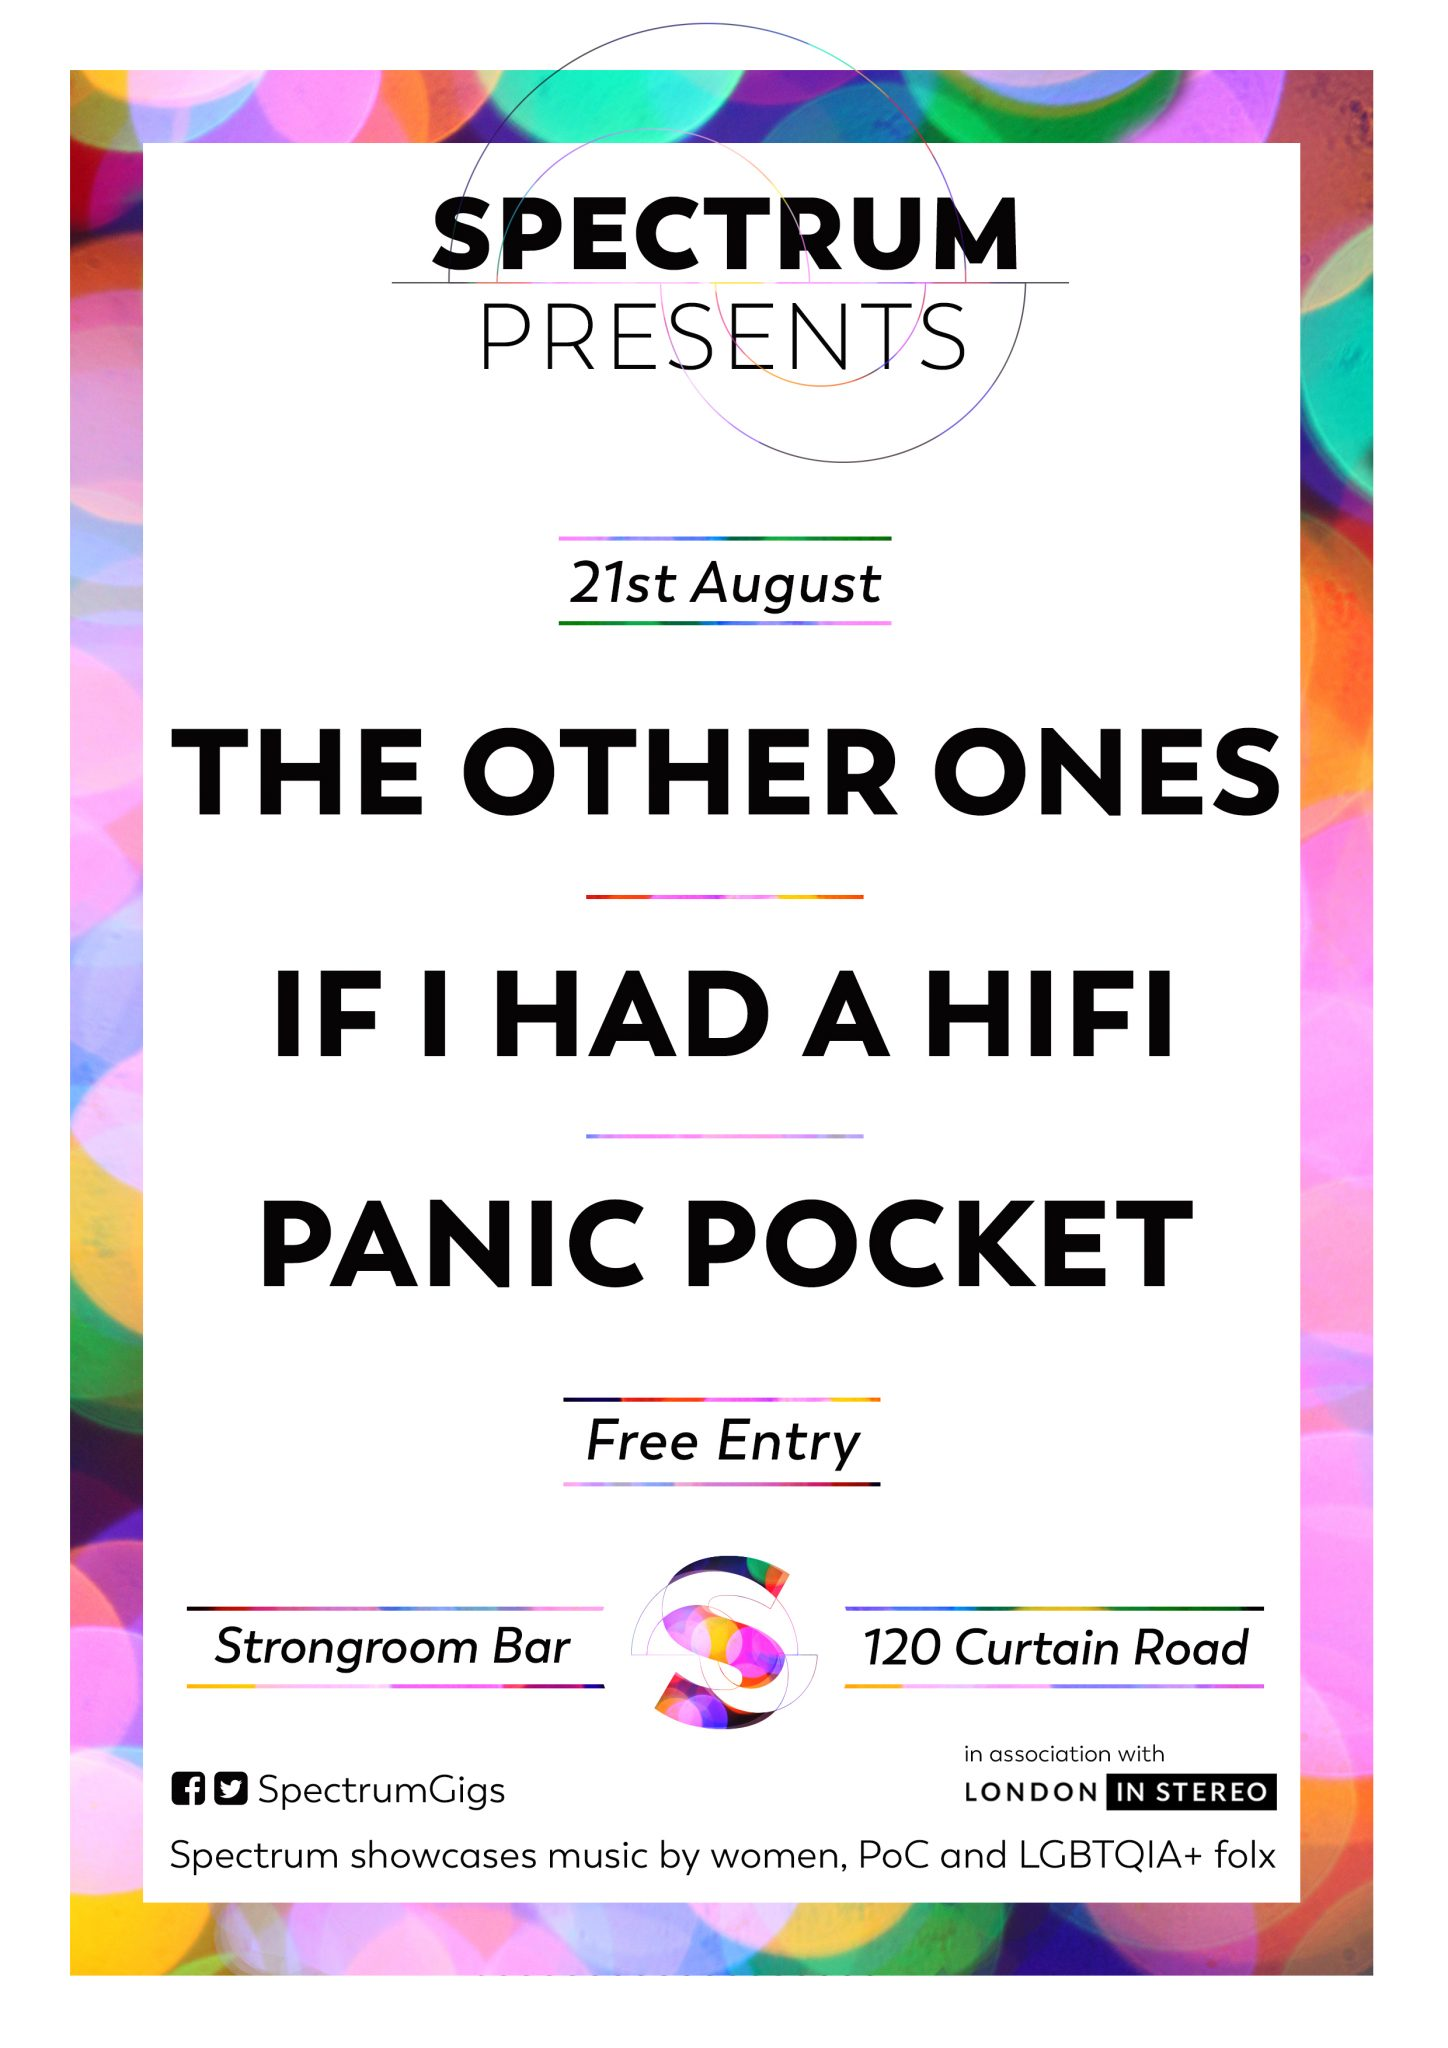 Spectrum presents The Other Ones, Panic Pocket & If I Had A HiFi